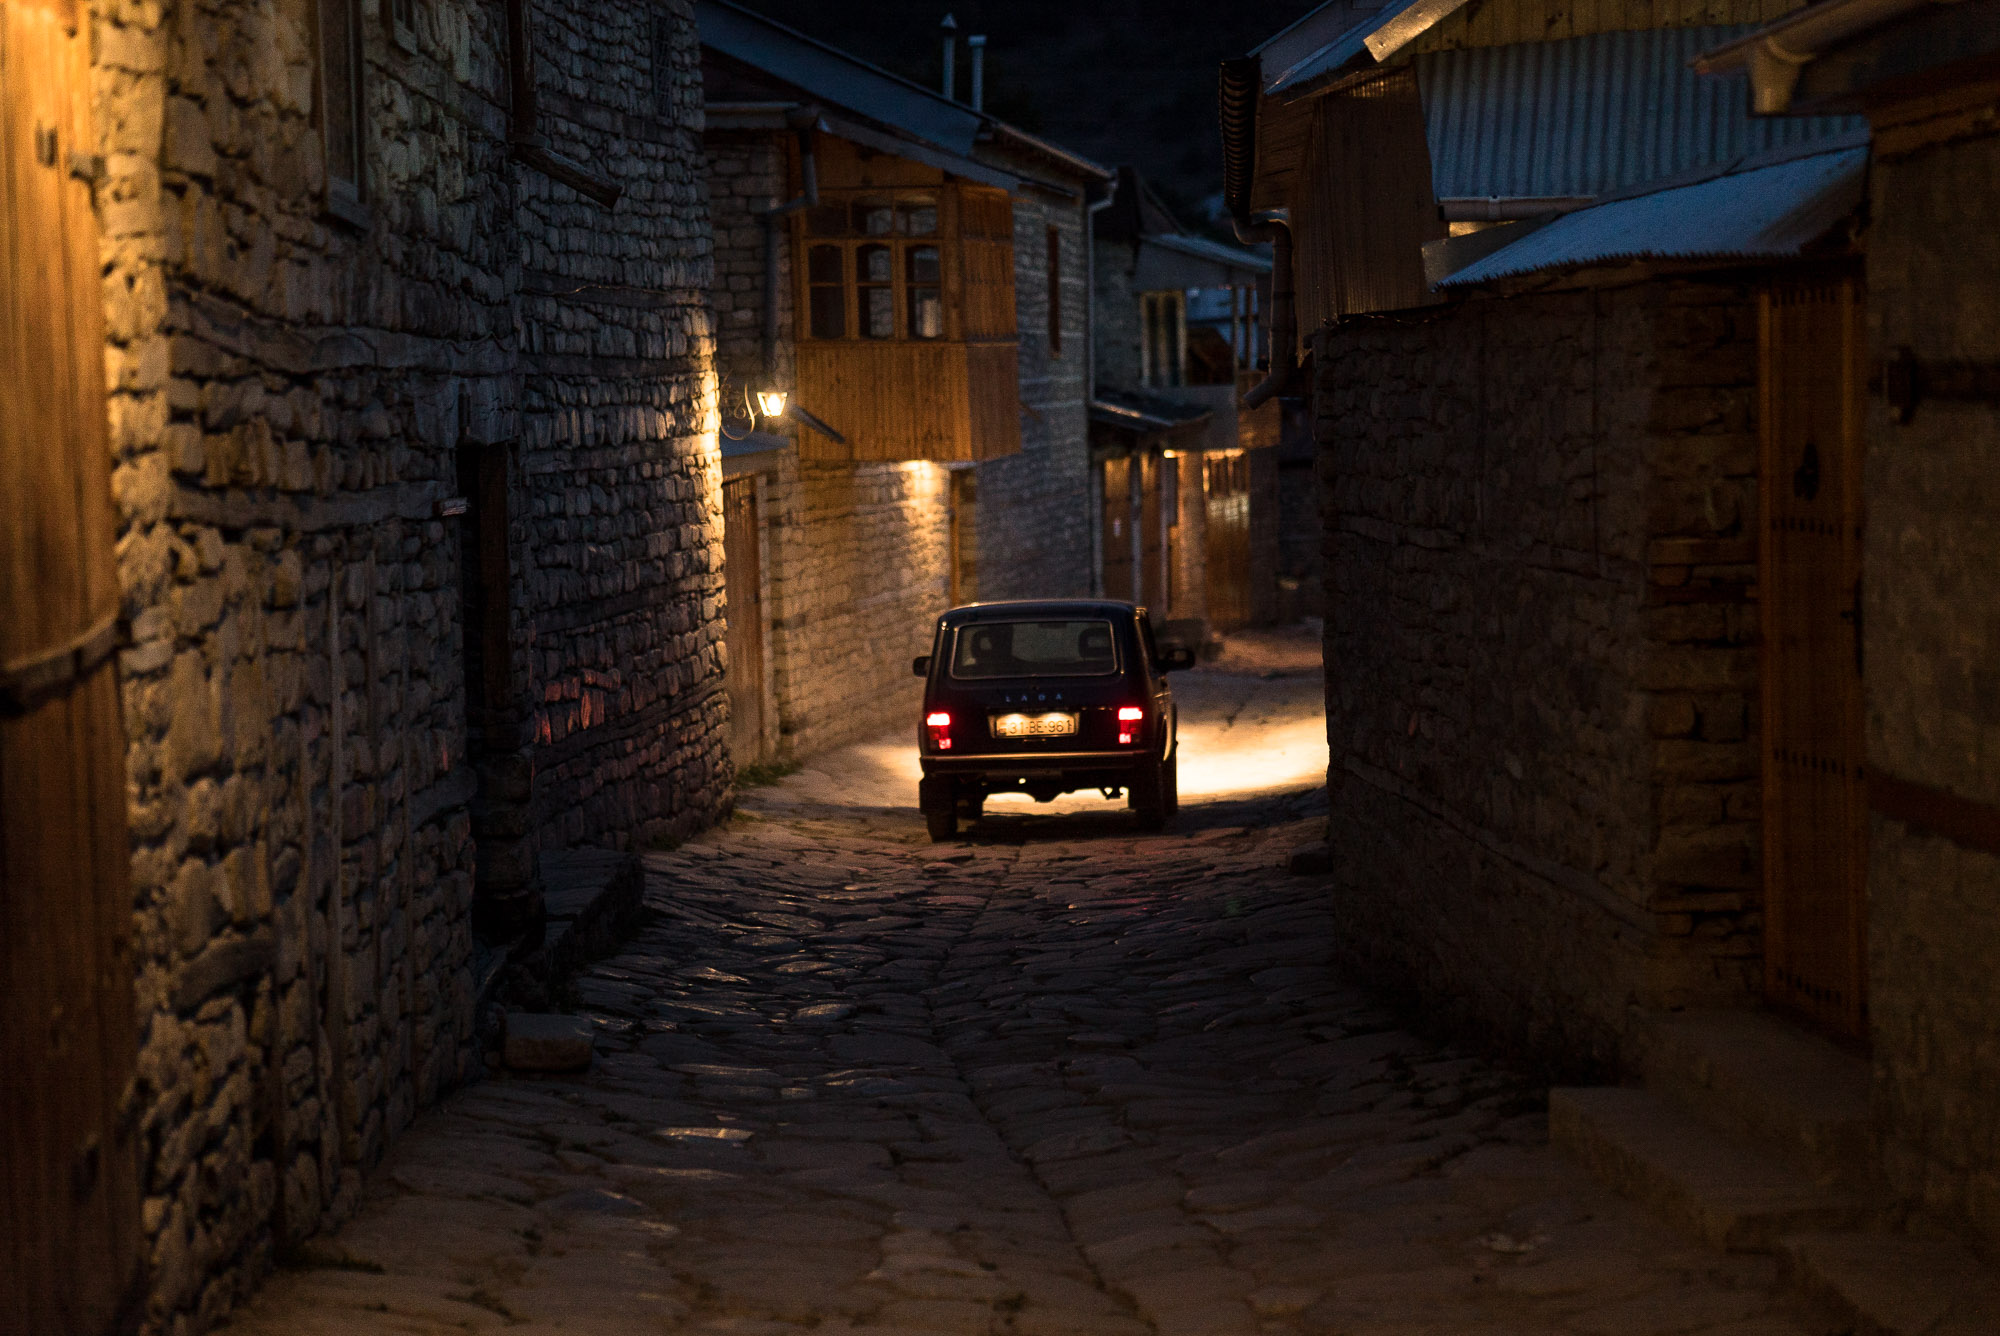 Lahij at night